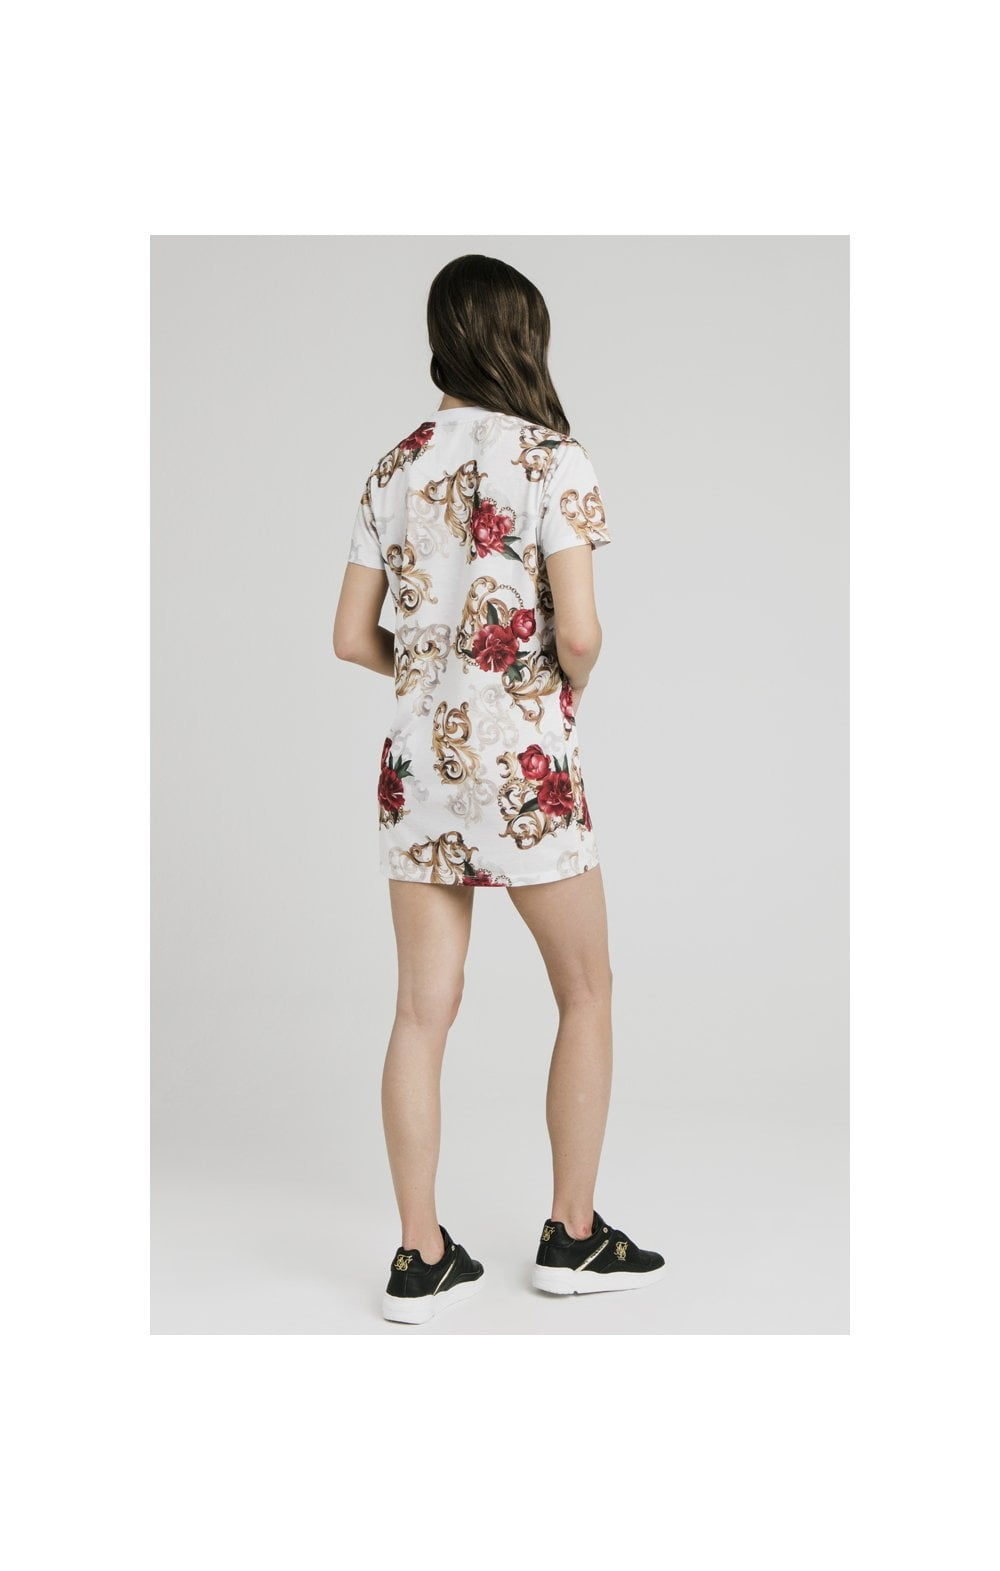 SikSilk T-Shirt Dress - White & Floral Elegance (7)